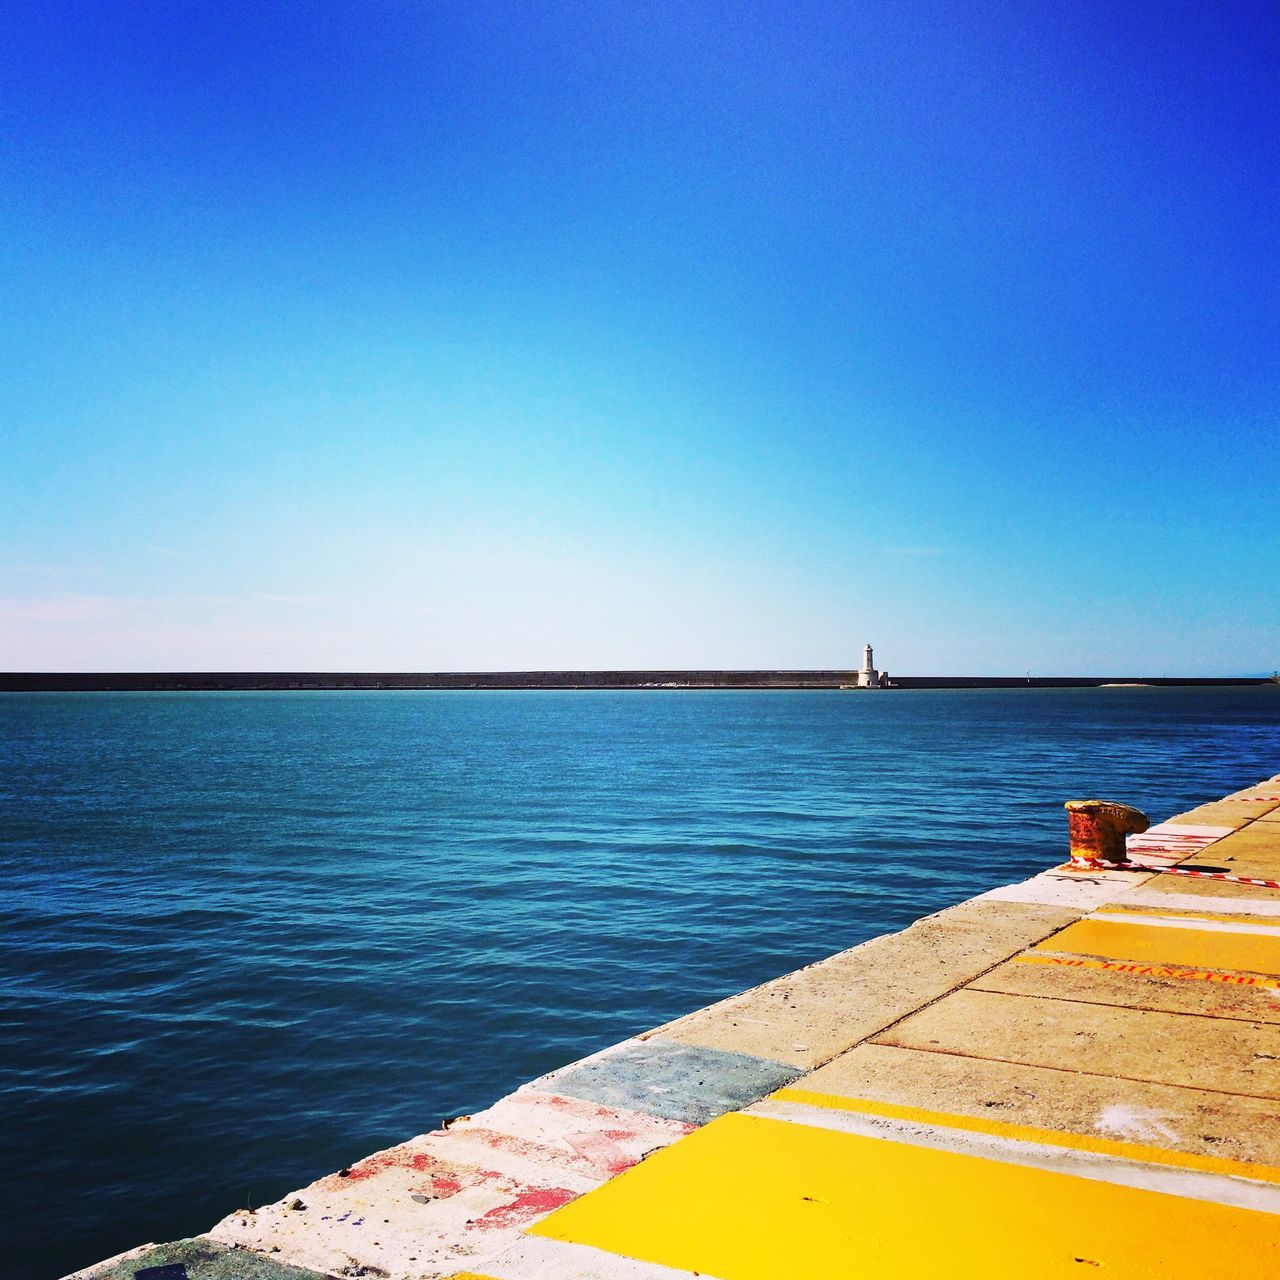 water, sea, blue, copy space, clear sky, nature, day, tranquility, scenics, outdoors, beauty in nature, no people, tranquil scene, horizon over water, sky, nautical vessel, retaining wall